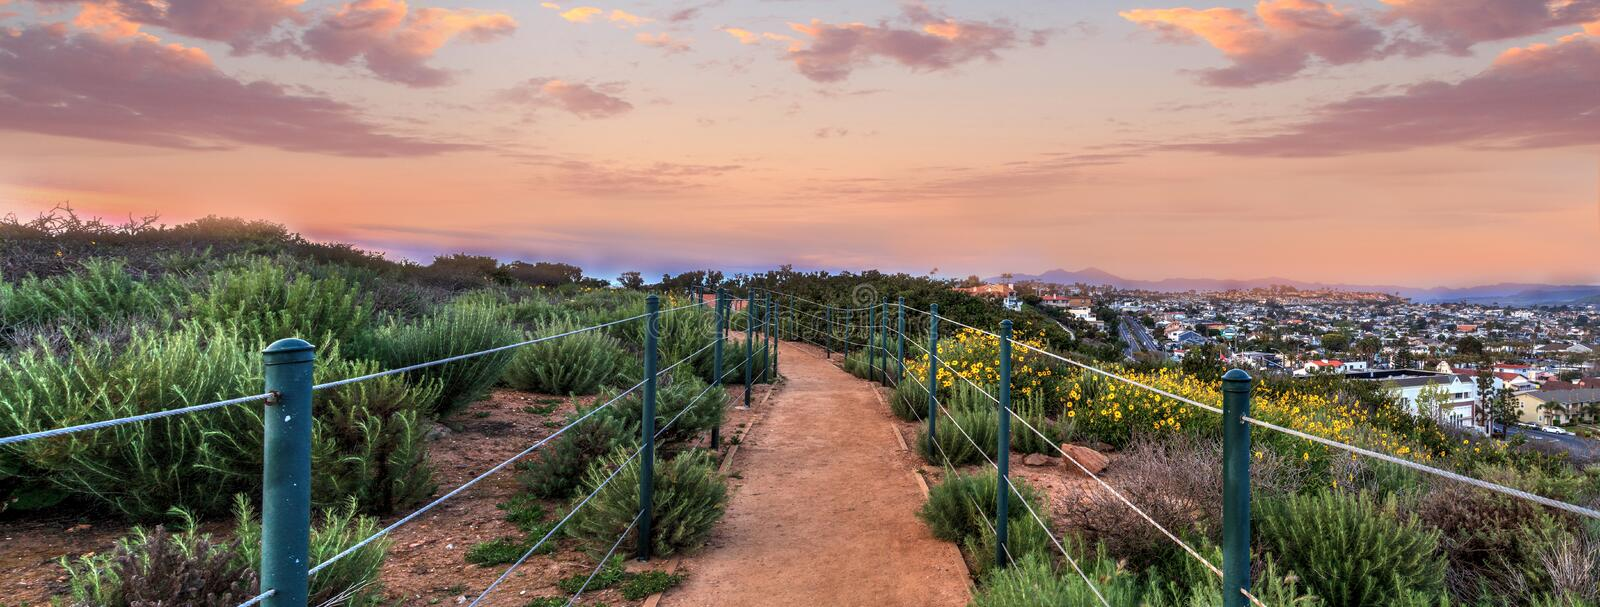 Hiking trail above Dana Point city view at sunset royalty free stock images